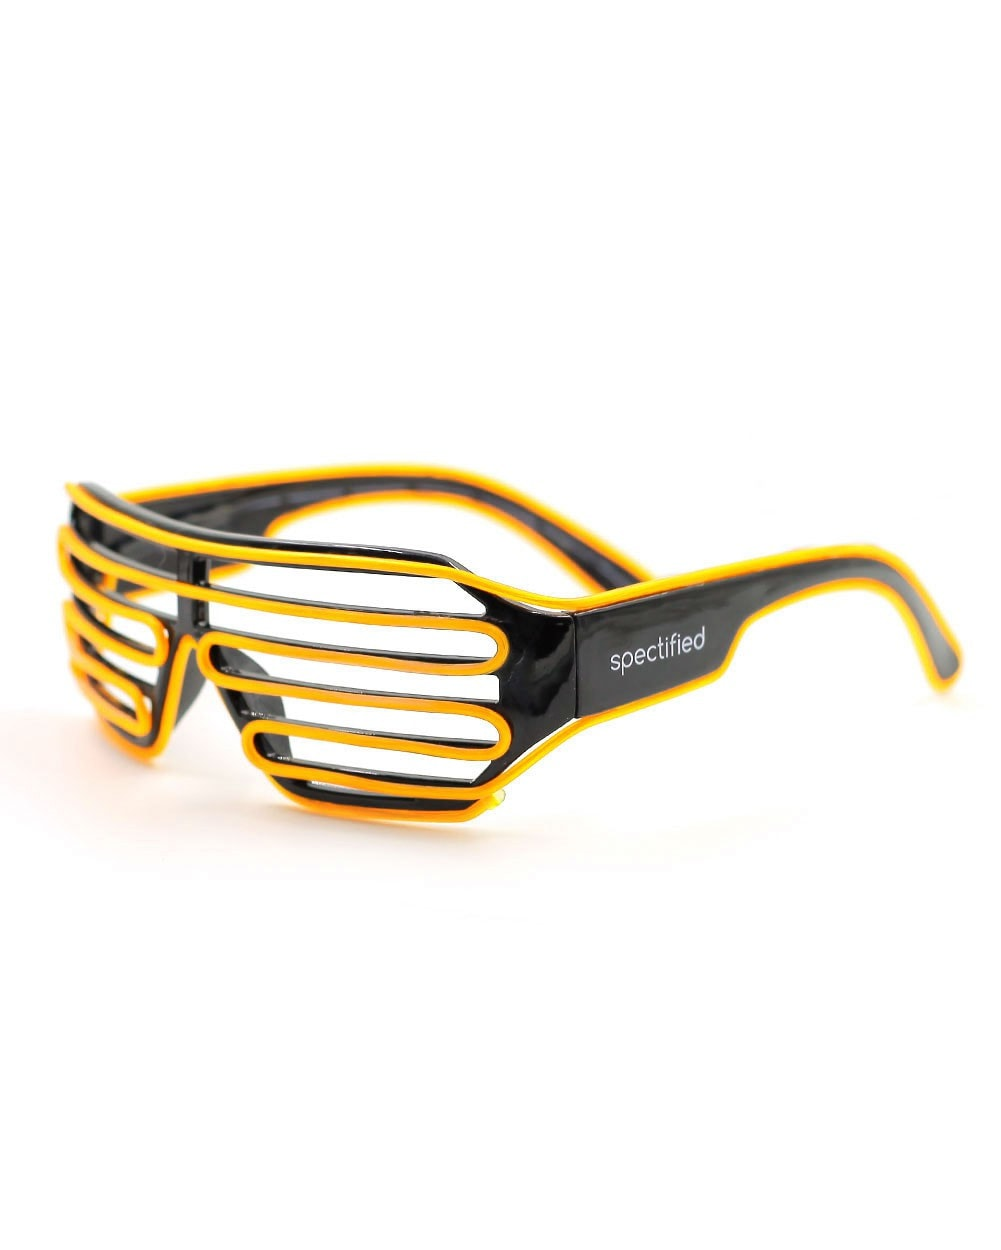 Black LED Shutter Glasses - Yellow